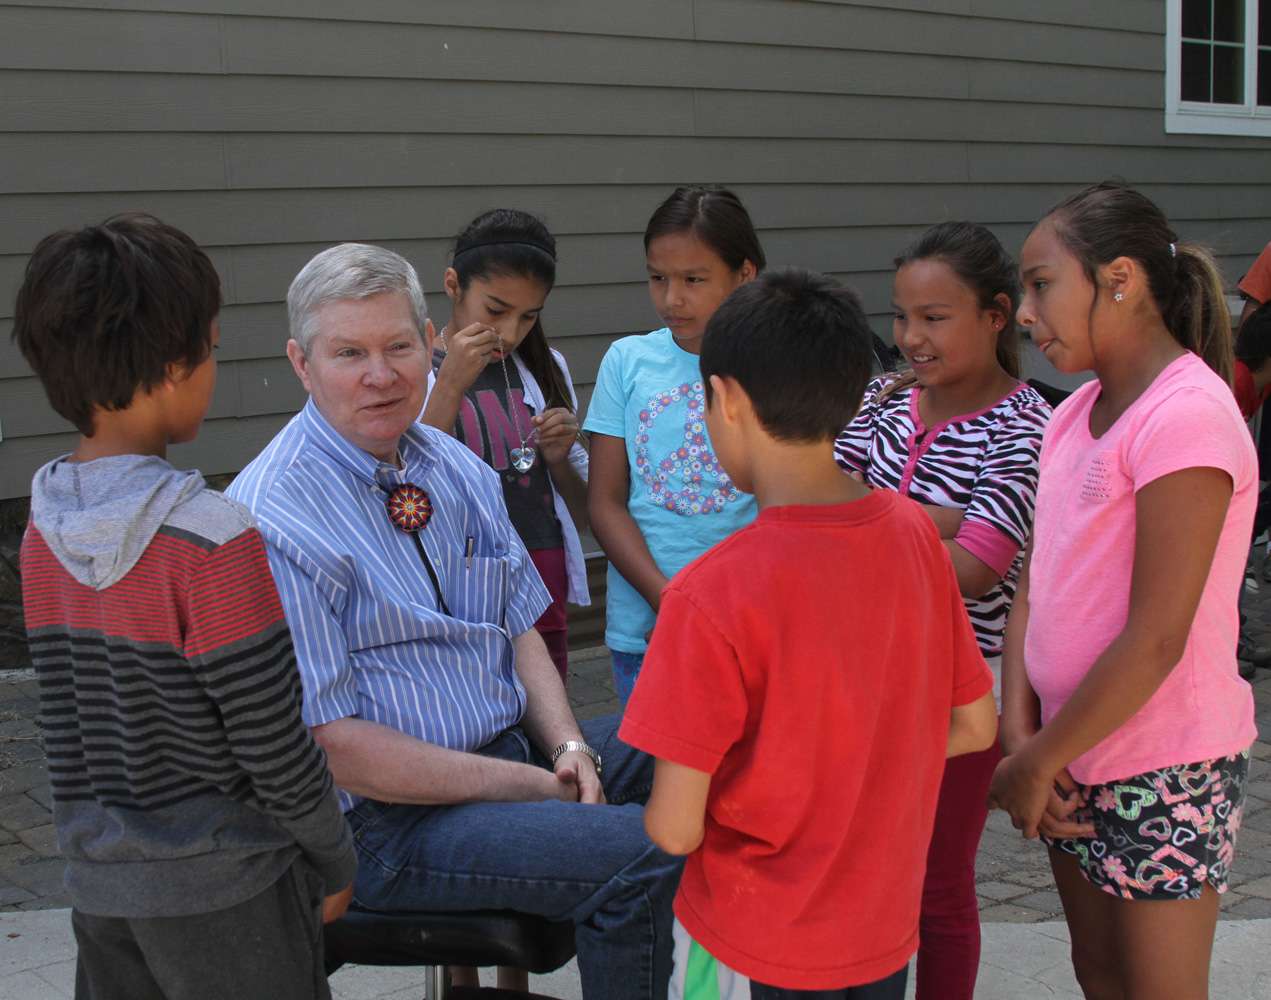 South Dakota Senator Tim Johnson visited the Lakota students at St. Joseph's Indian School.